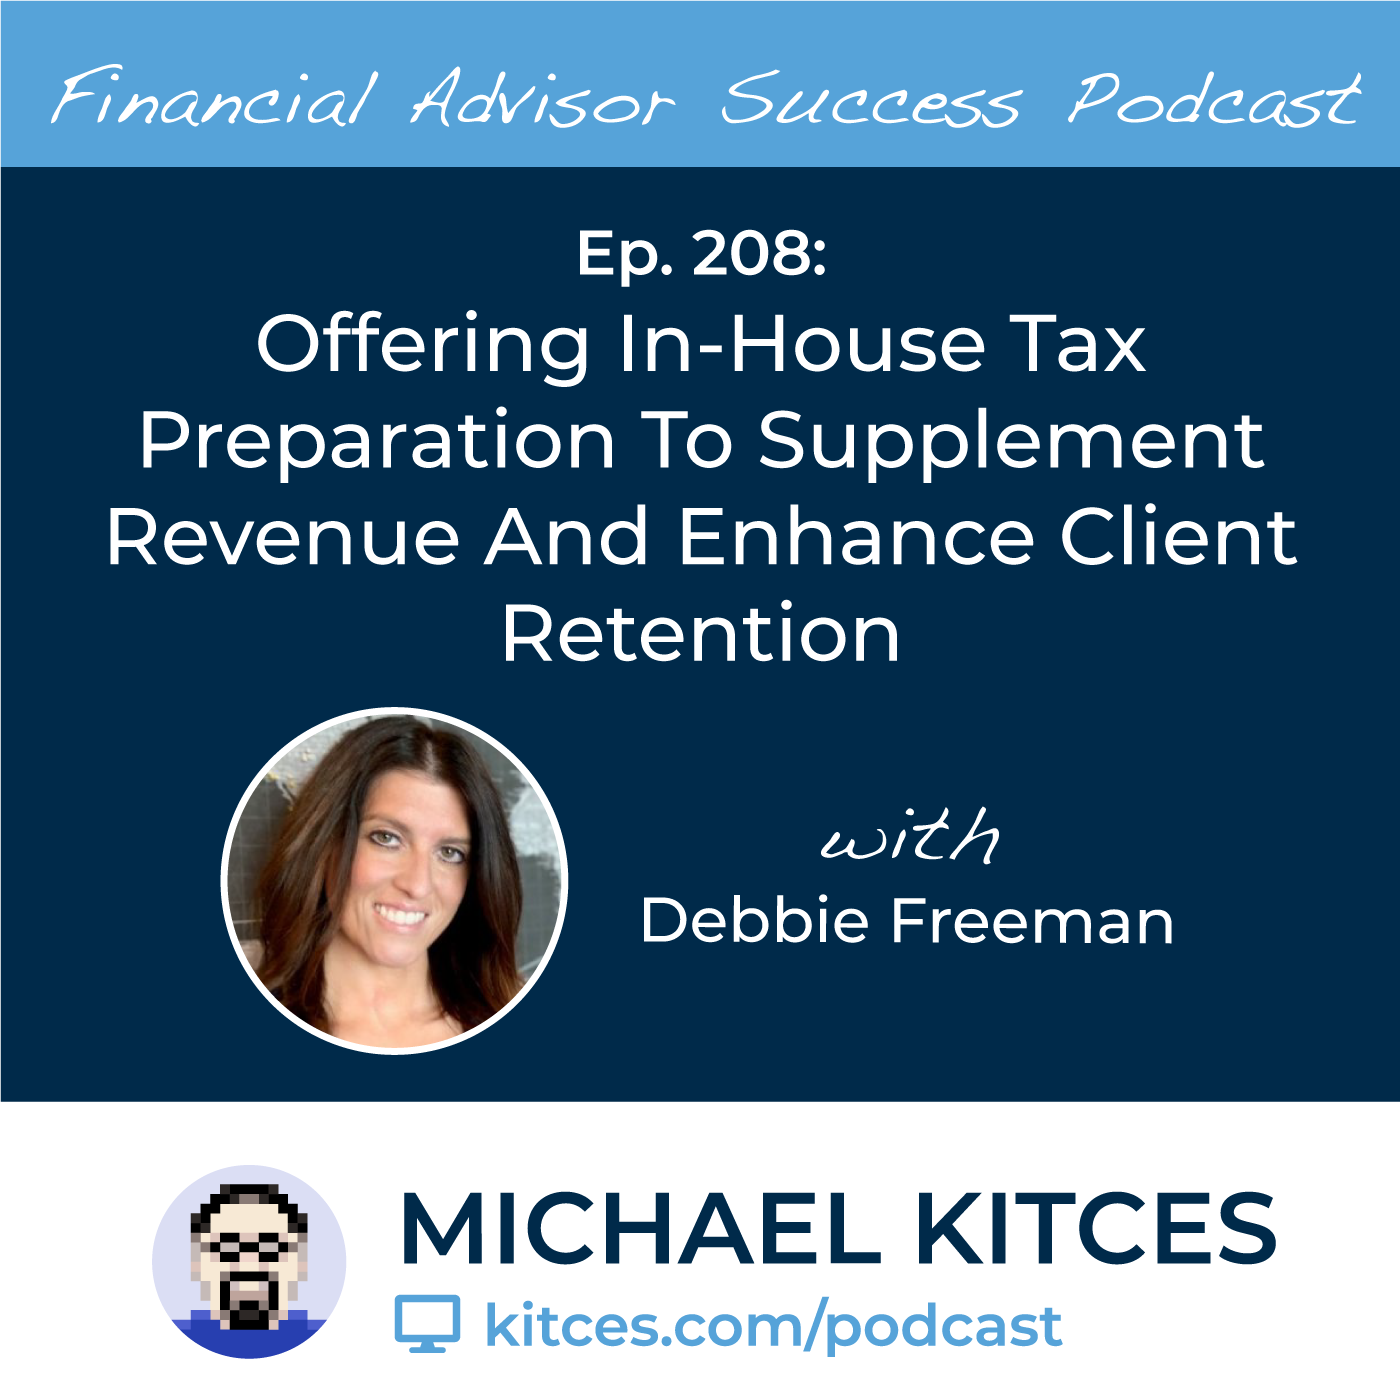 Ep 208: Offering In-House Tax Preparation To Supplement Revenue And Enhance Client Retention with Debbie Freeman